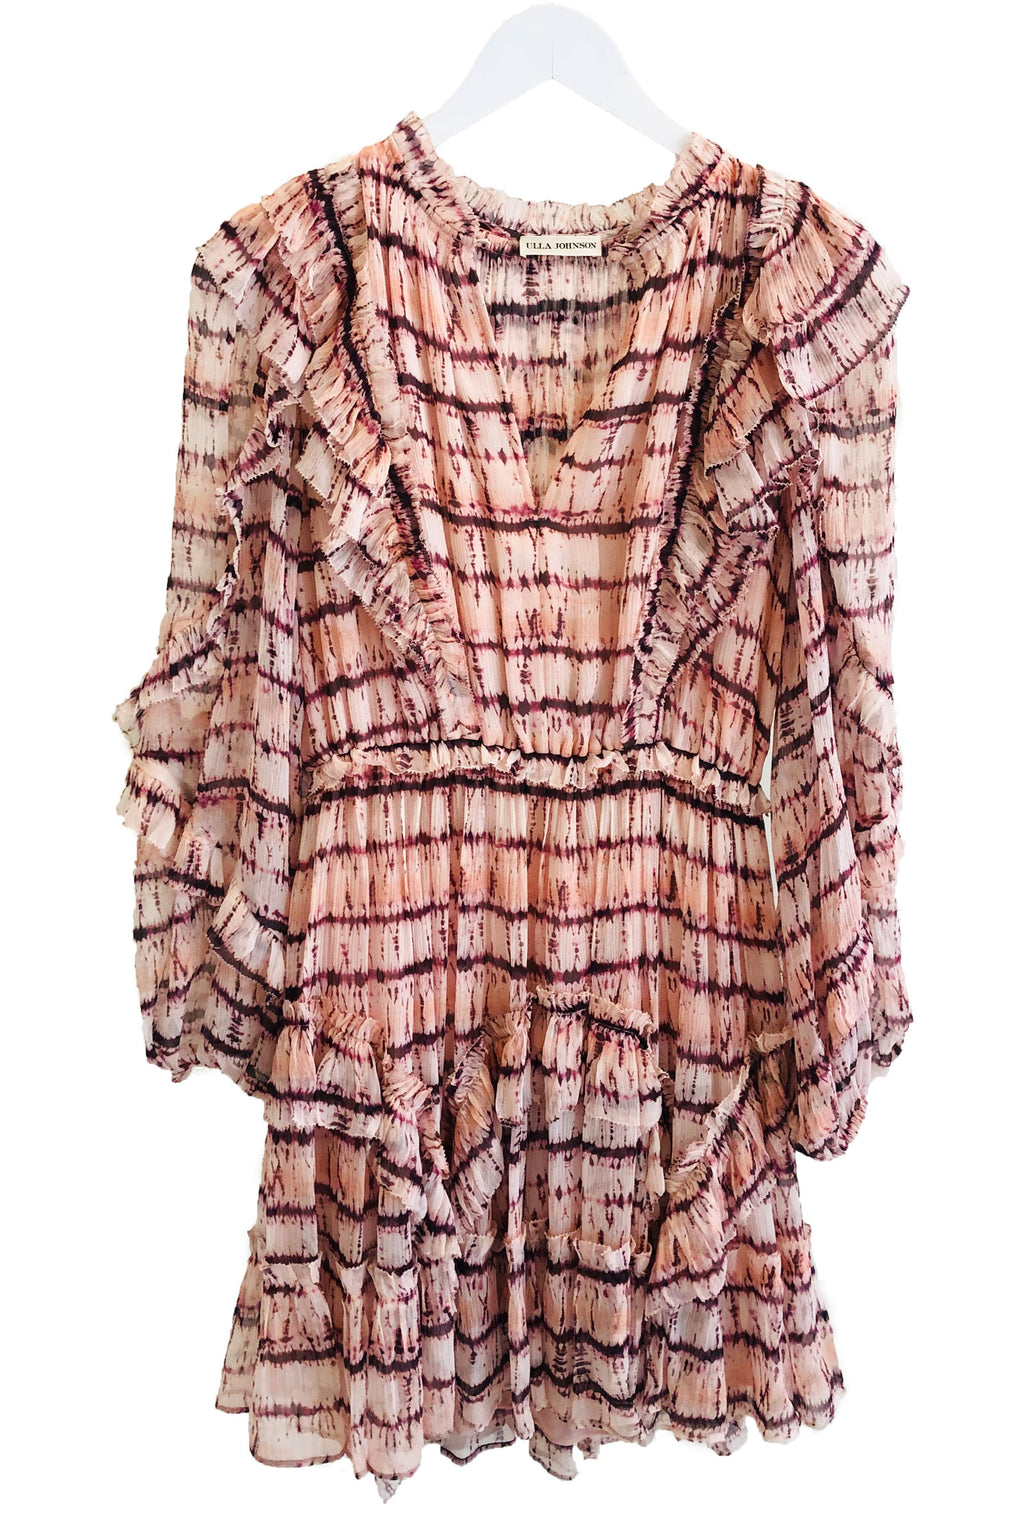 Ulla Johnson Aberdeen Dress in Blush Tie Dye